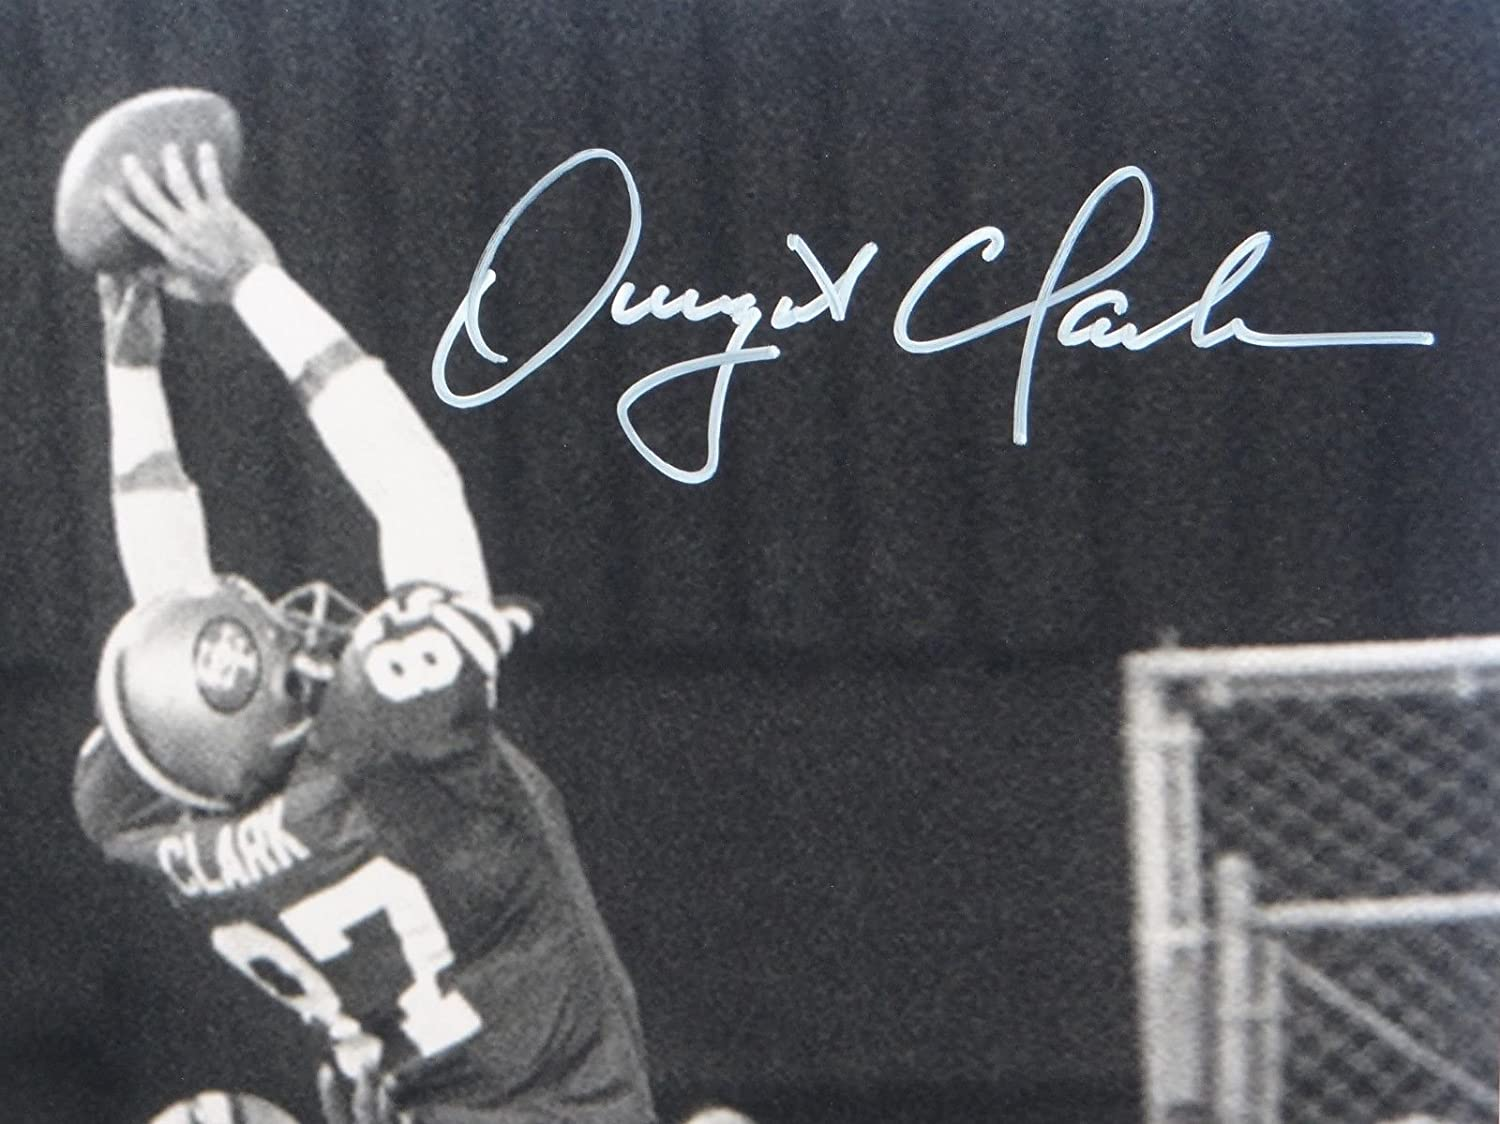 Dwight Clark Everson Walls Autographed 16x20 BW The Catch Photo- JSA W Auth  at Amazon's Sports Collectibles Store